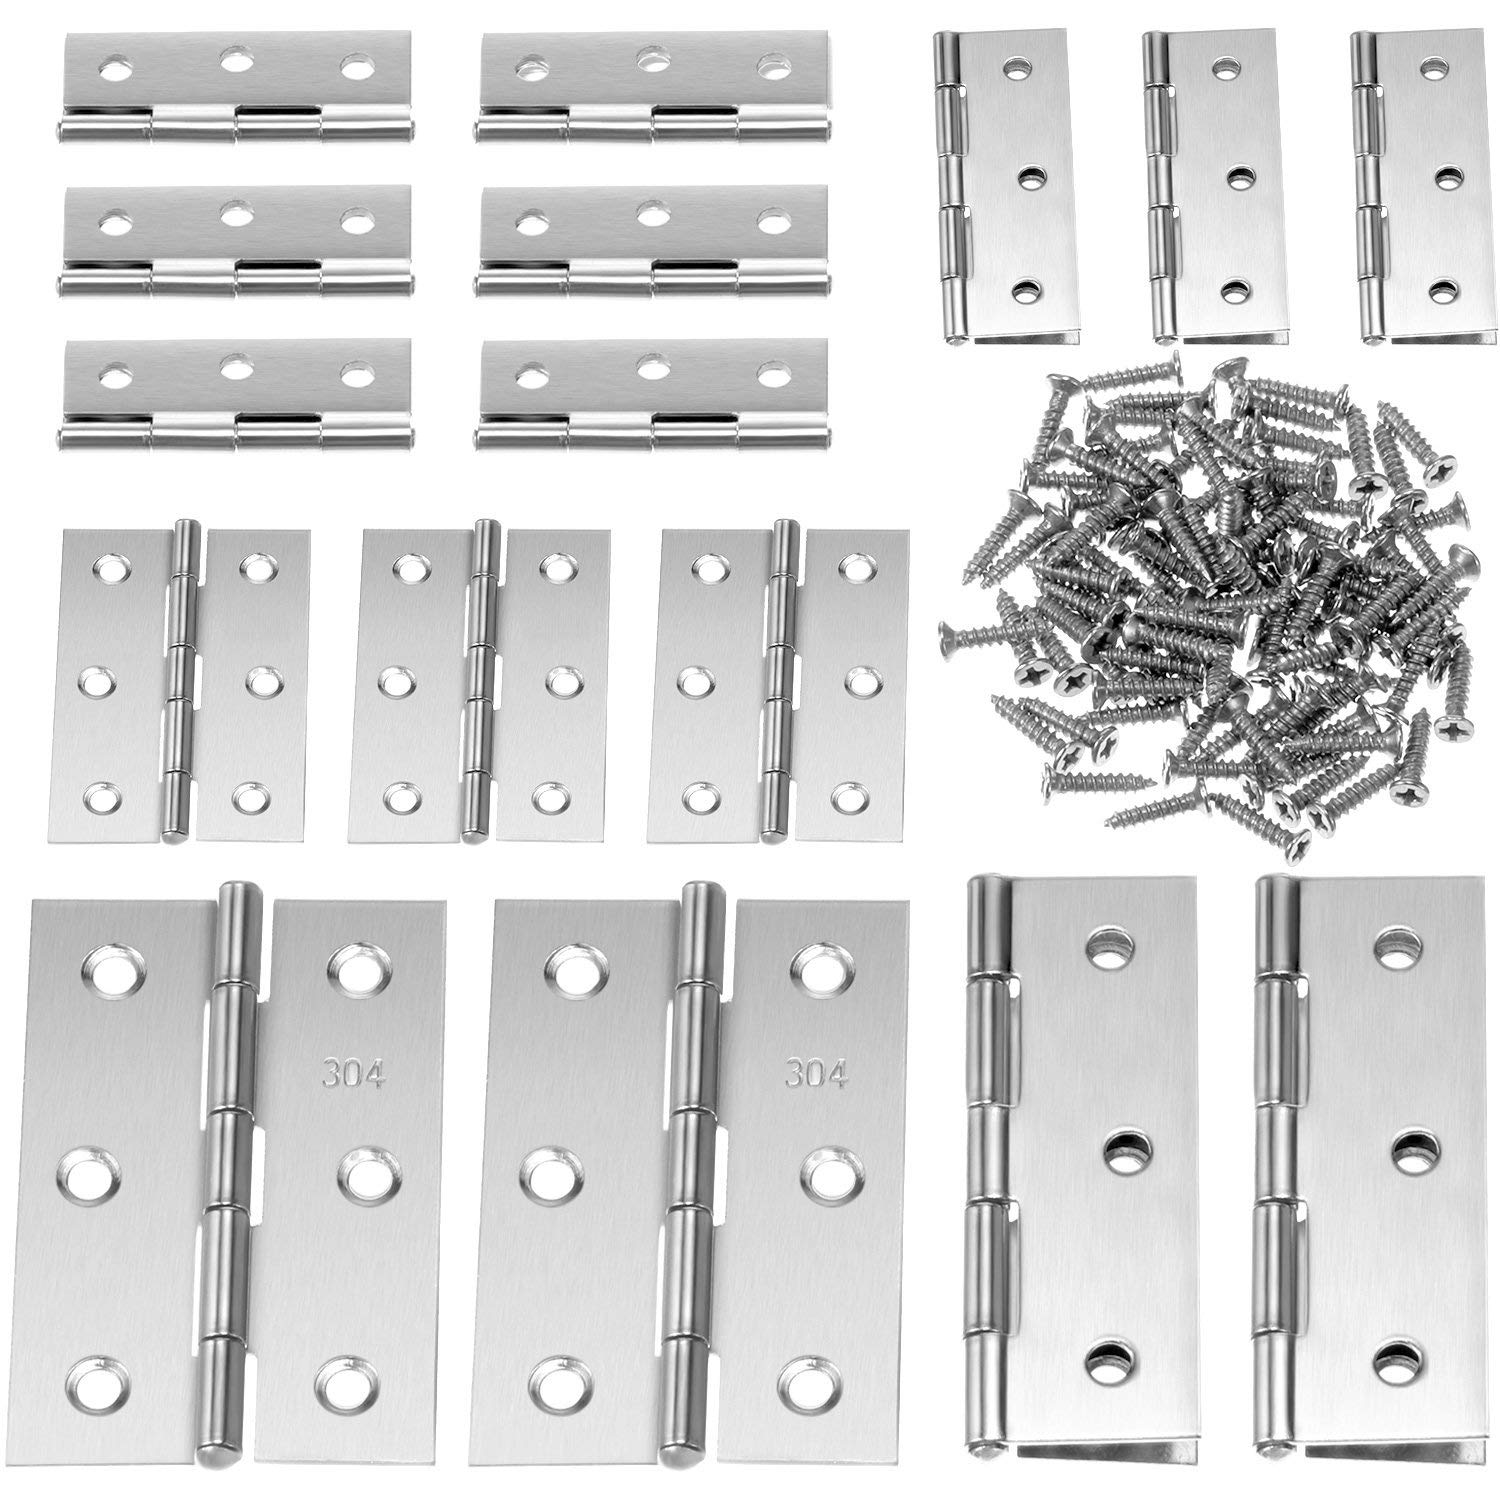 GBSTORE 10Pcs Mini Fashion Design Brass Color Butterfly Hinges Cabinet Drawer Door Butt Hinge